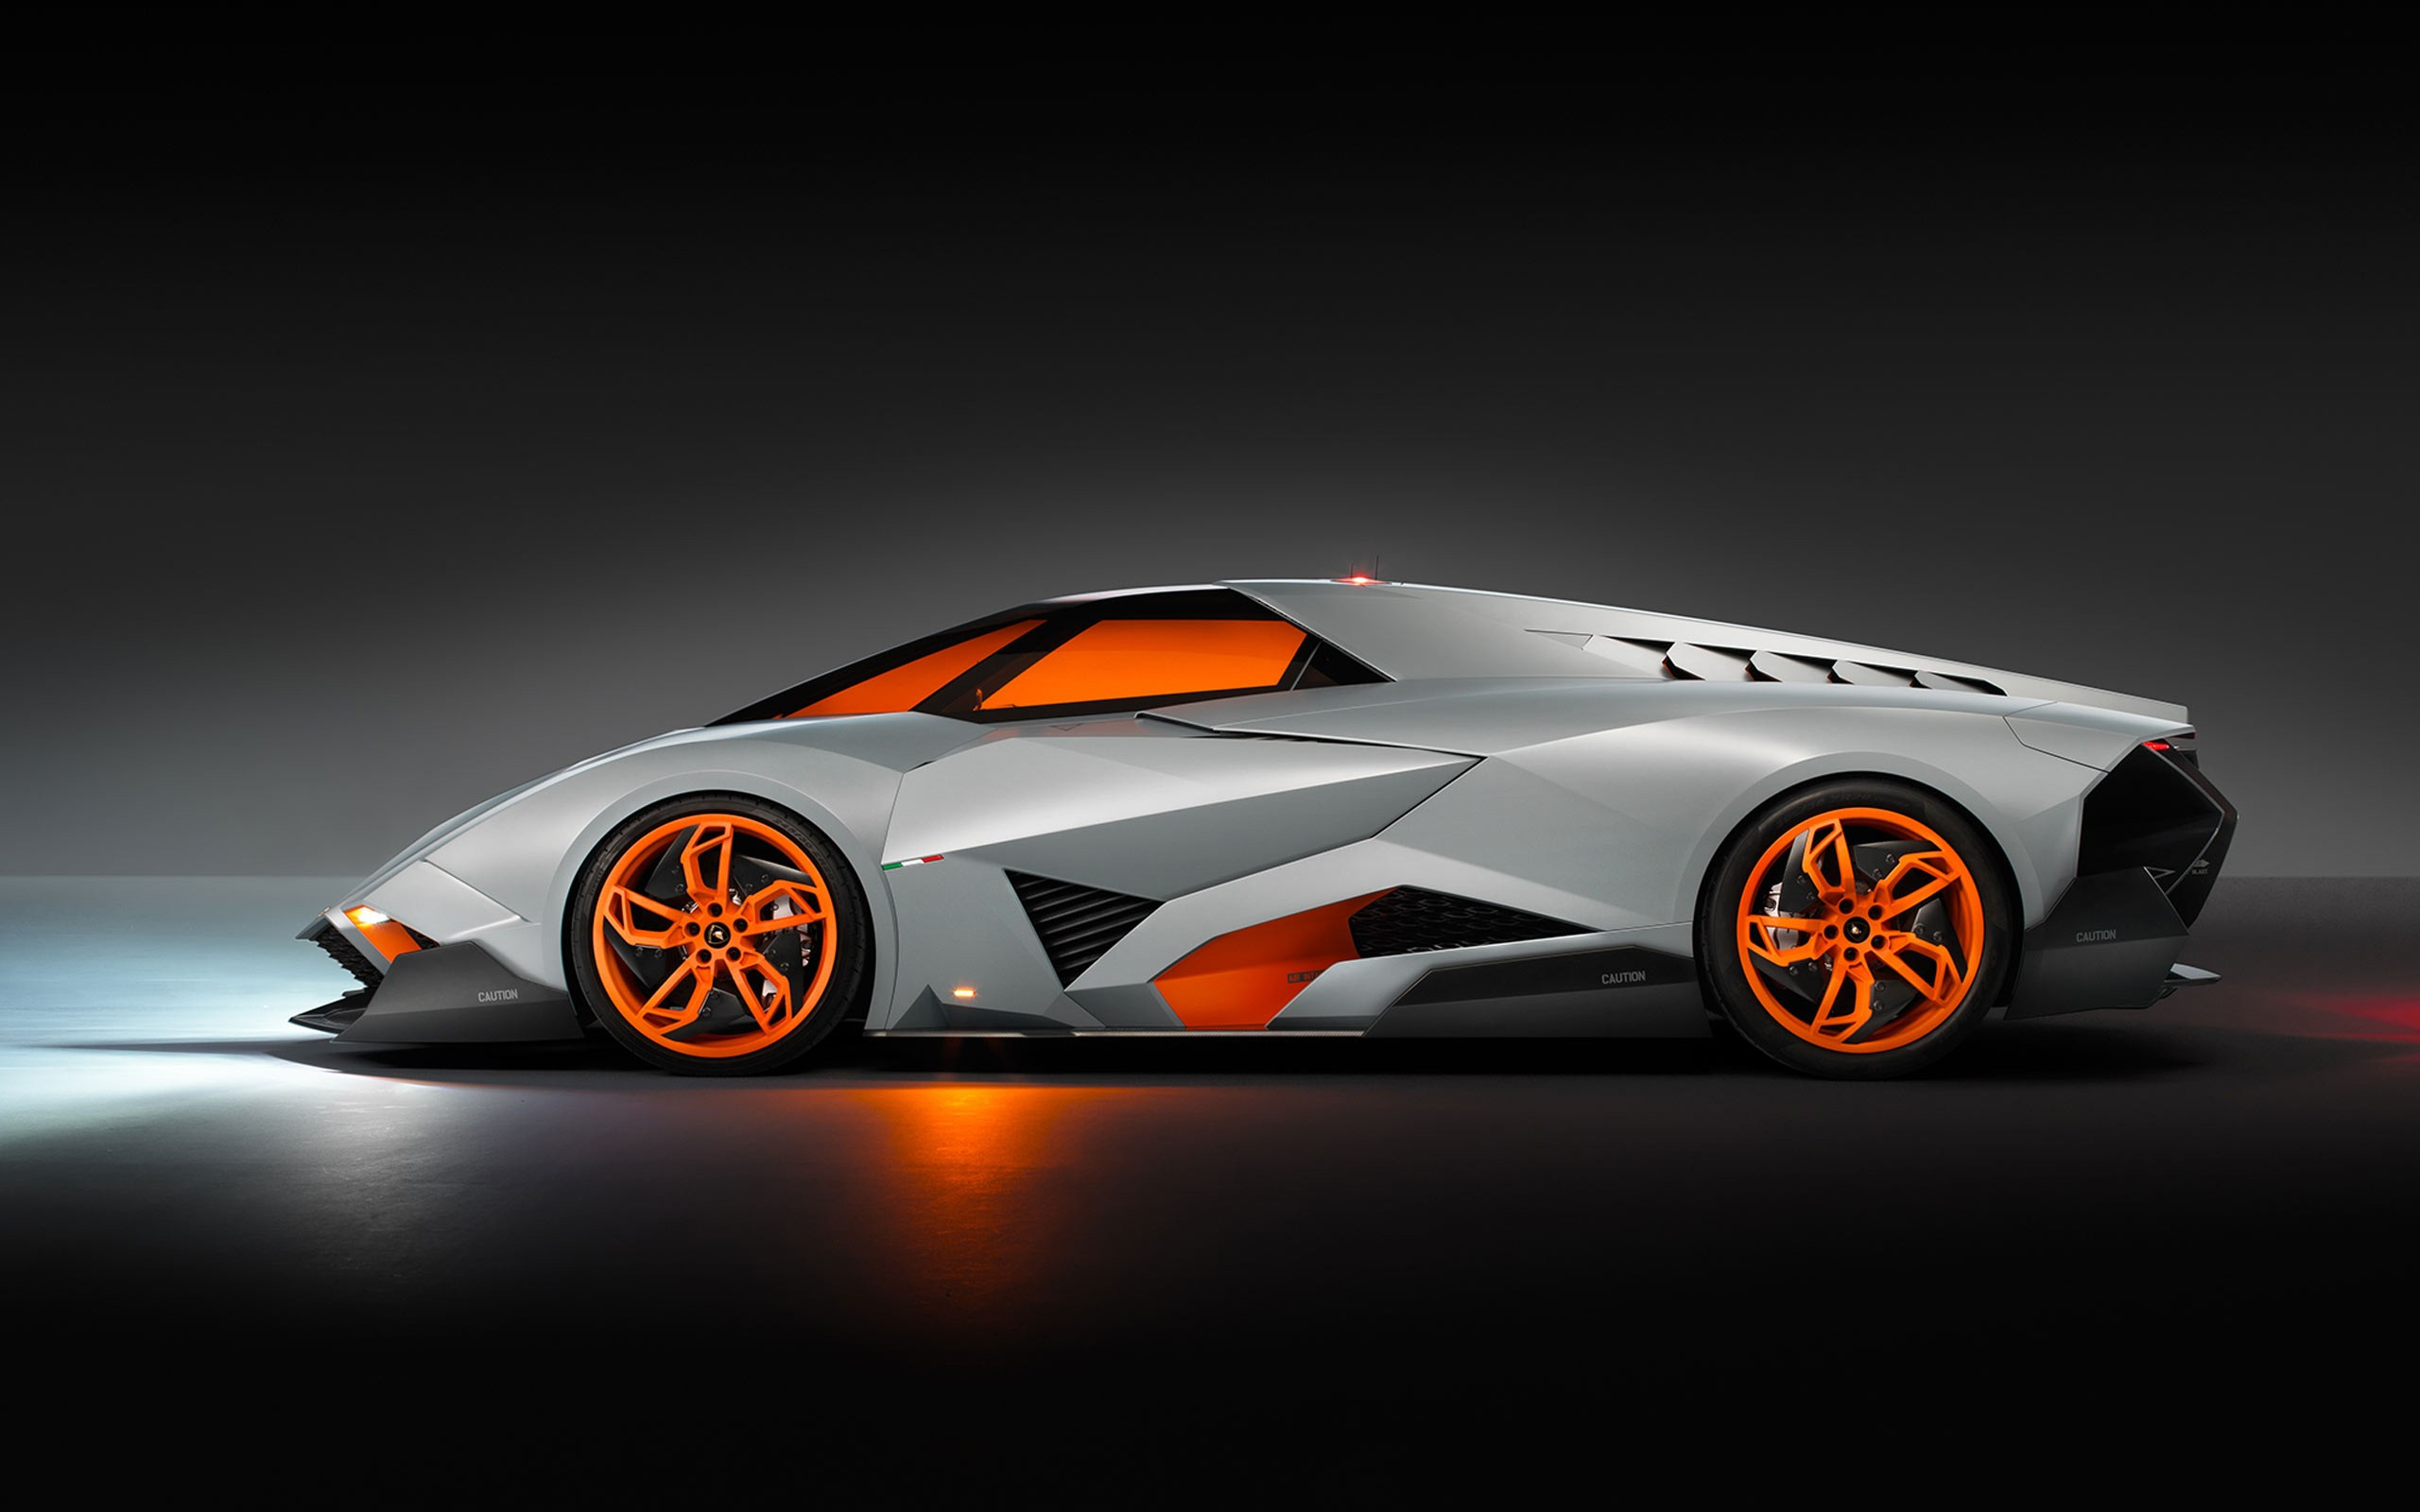 Lamborghini Egoista Concept 3 Wallpaper in 2560x1600 ...